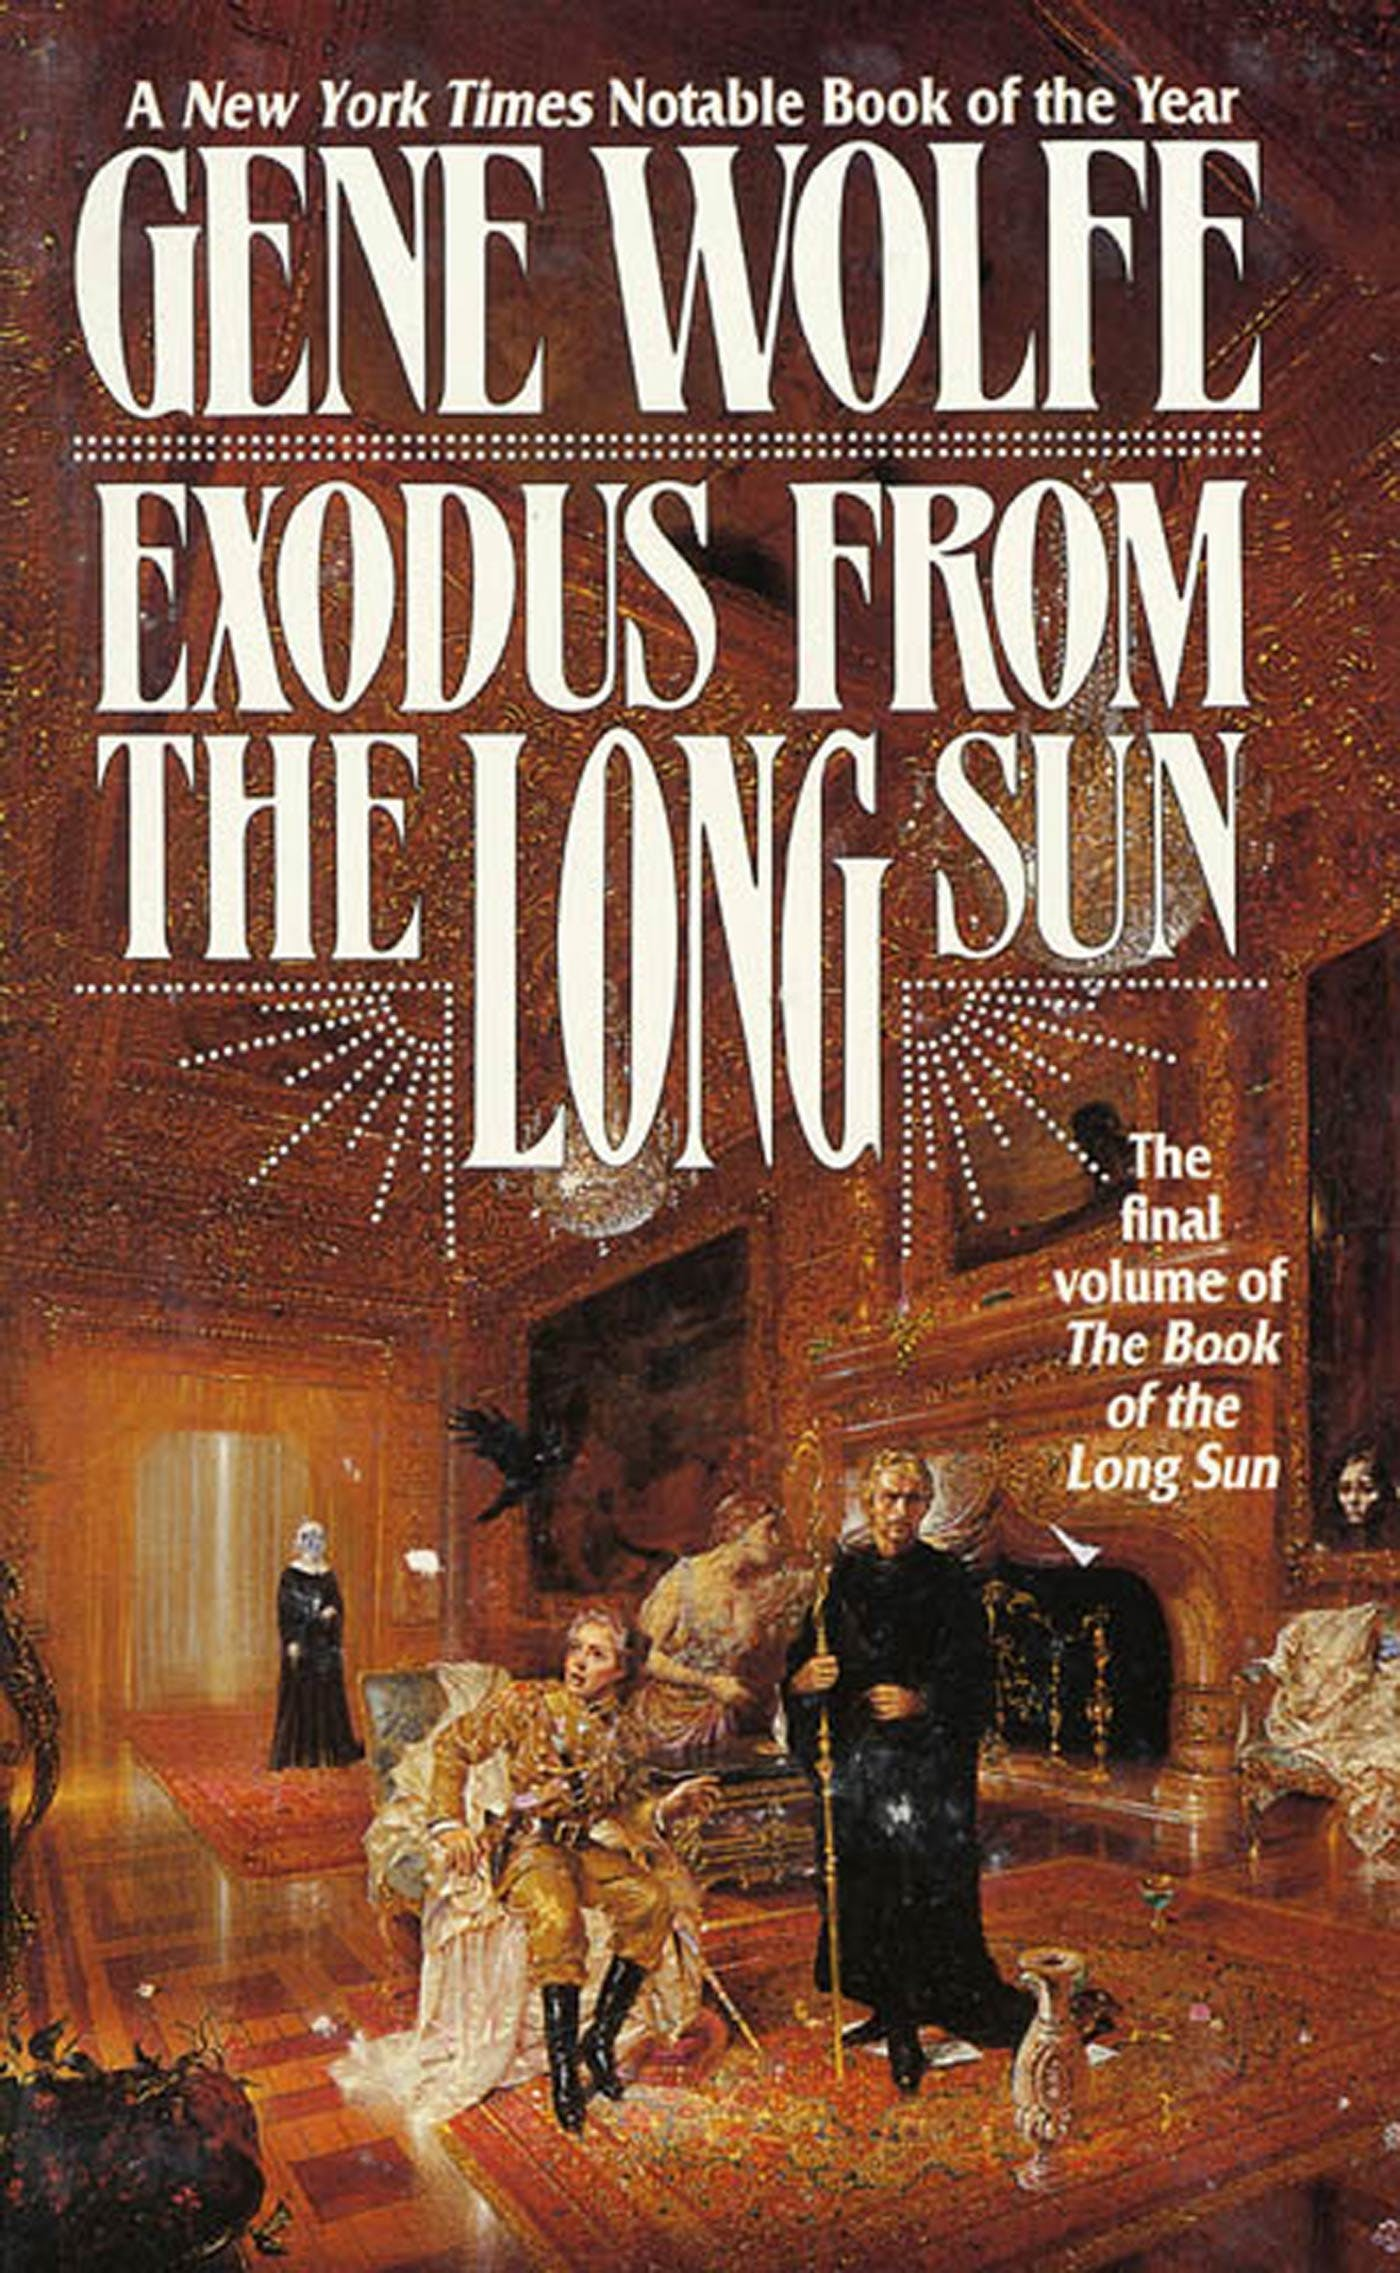 Image of Exodus From The Long Sun